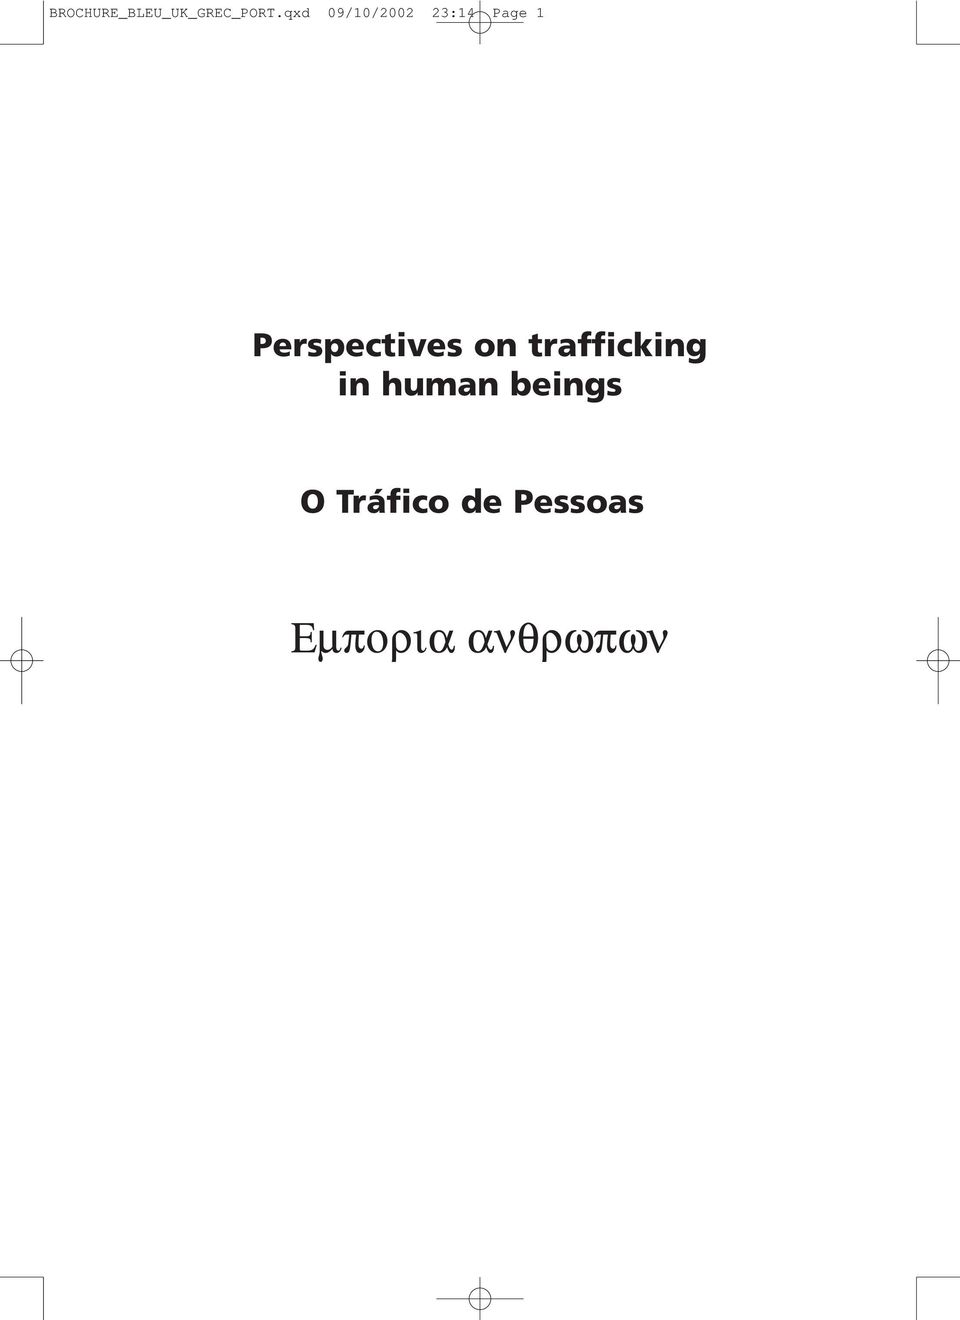 Perspectives on trafficking in